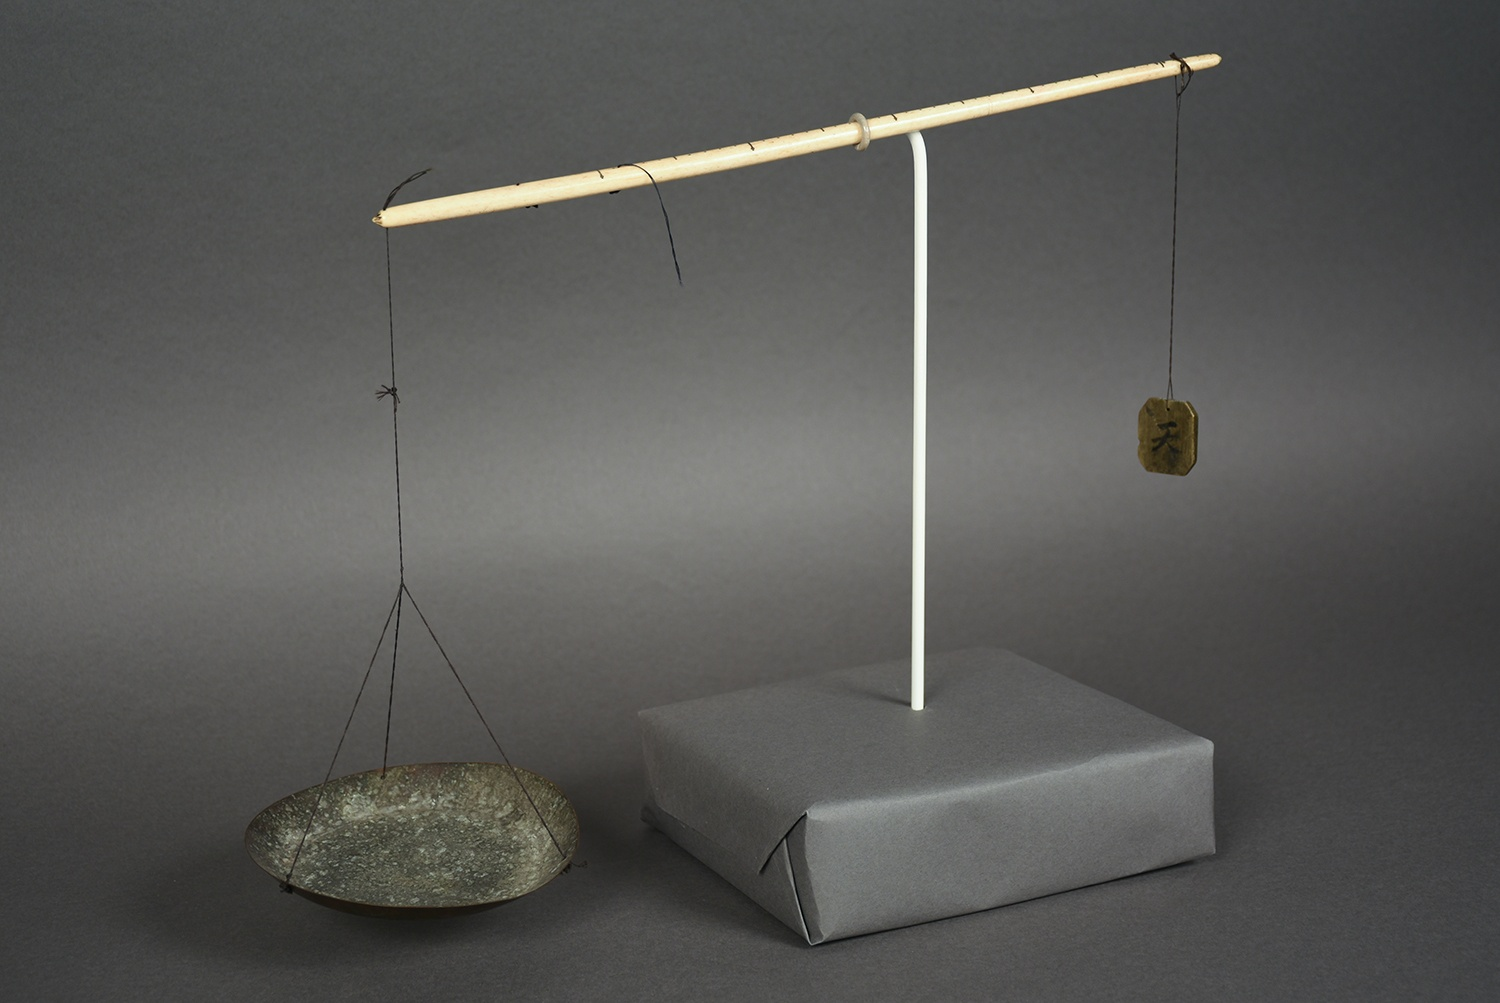 Scale used in the Git Lee General Merchandise Store, c. 1940 This scale was used for weighing herbs, mushrooms, dried nuts, roots, and berries in the family store. Gift of the Git Lee family, 2004.154.5, Heinz History Center Museum Collections.